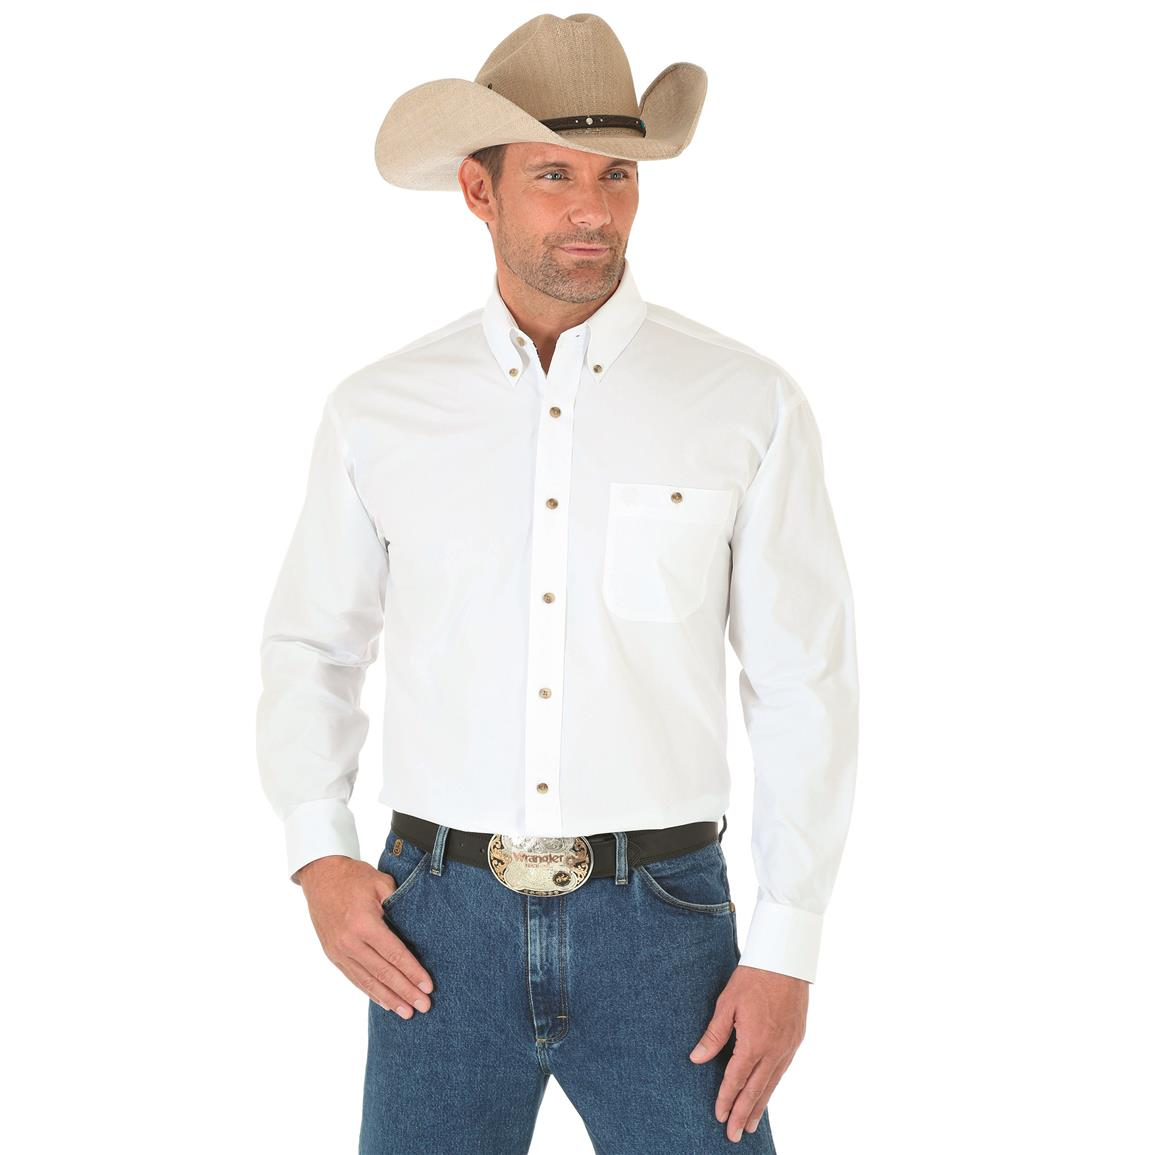 Wrangler George Strait Men's Long Sleeve Button Down Solid Shirt, White